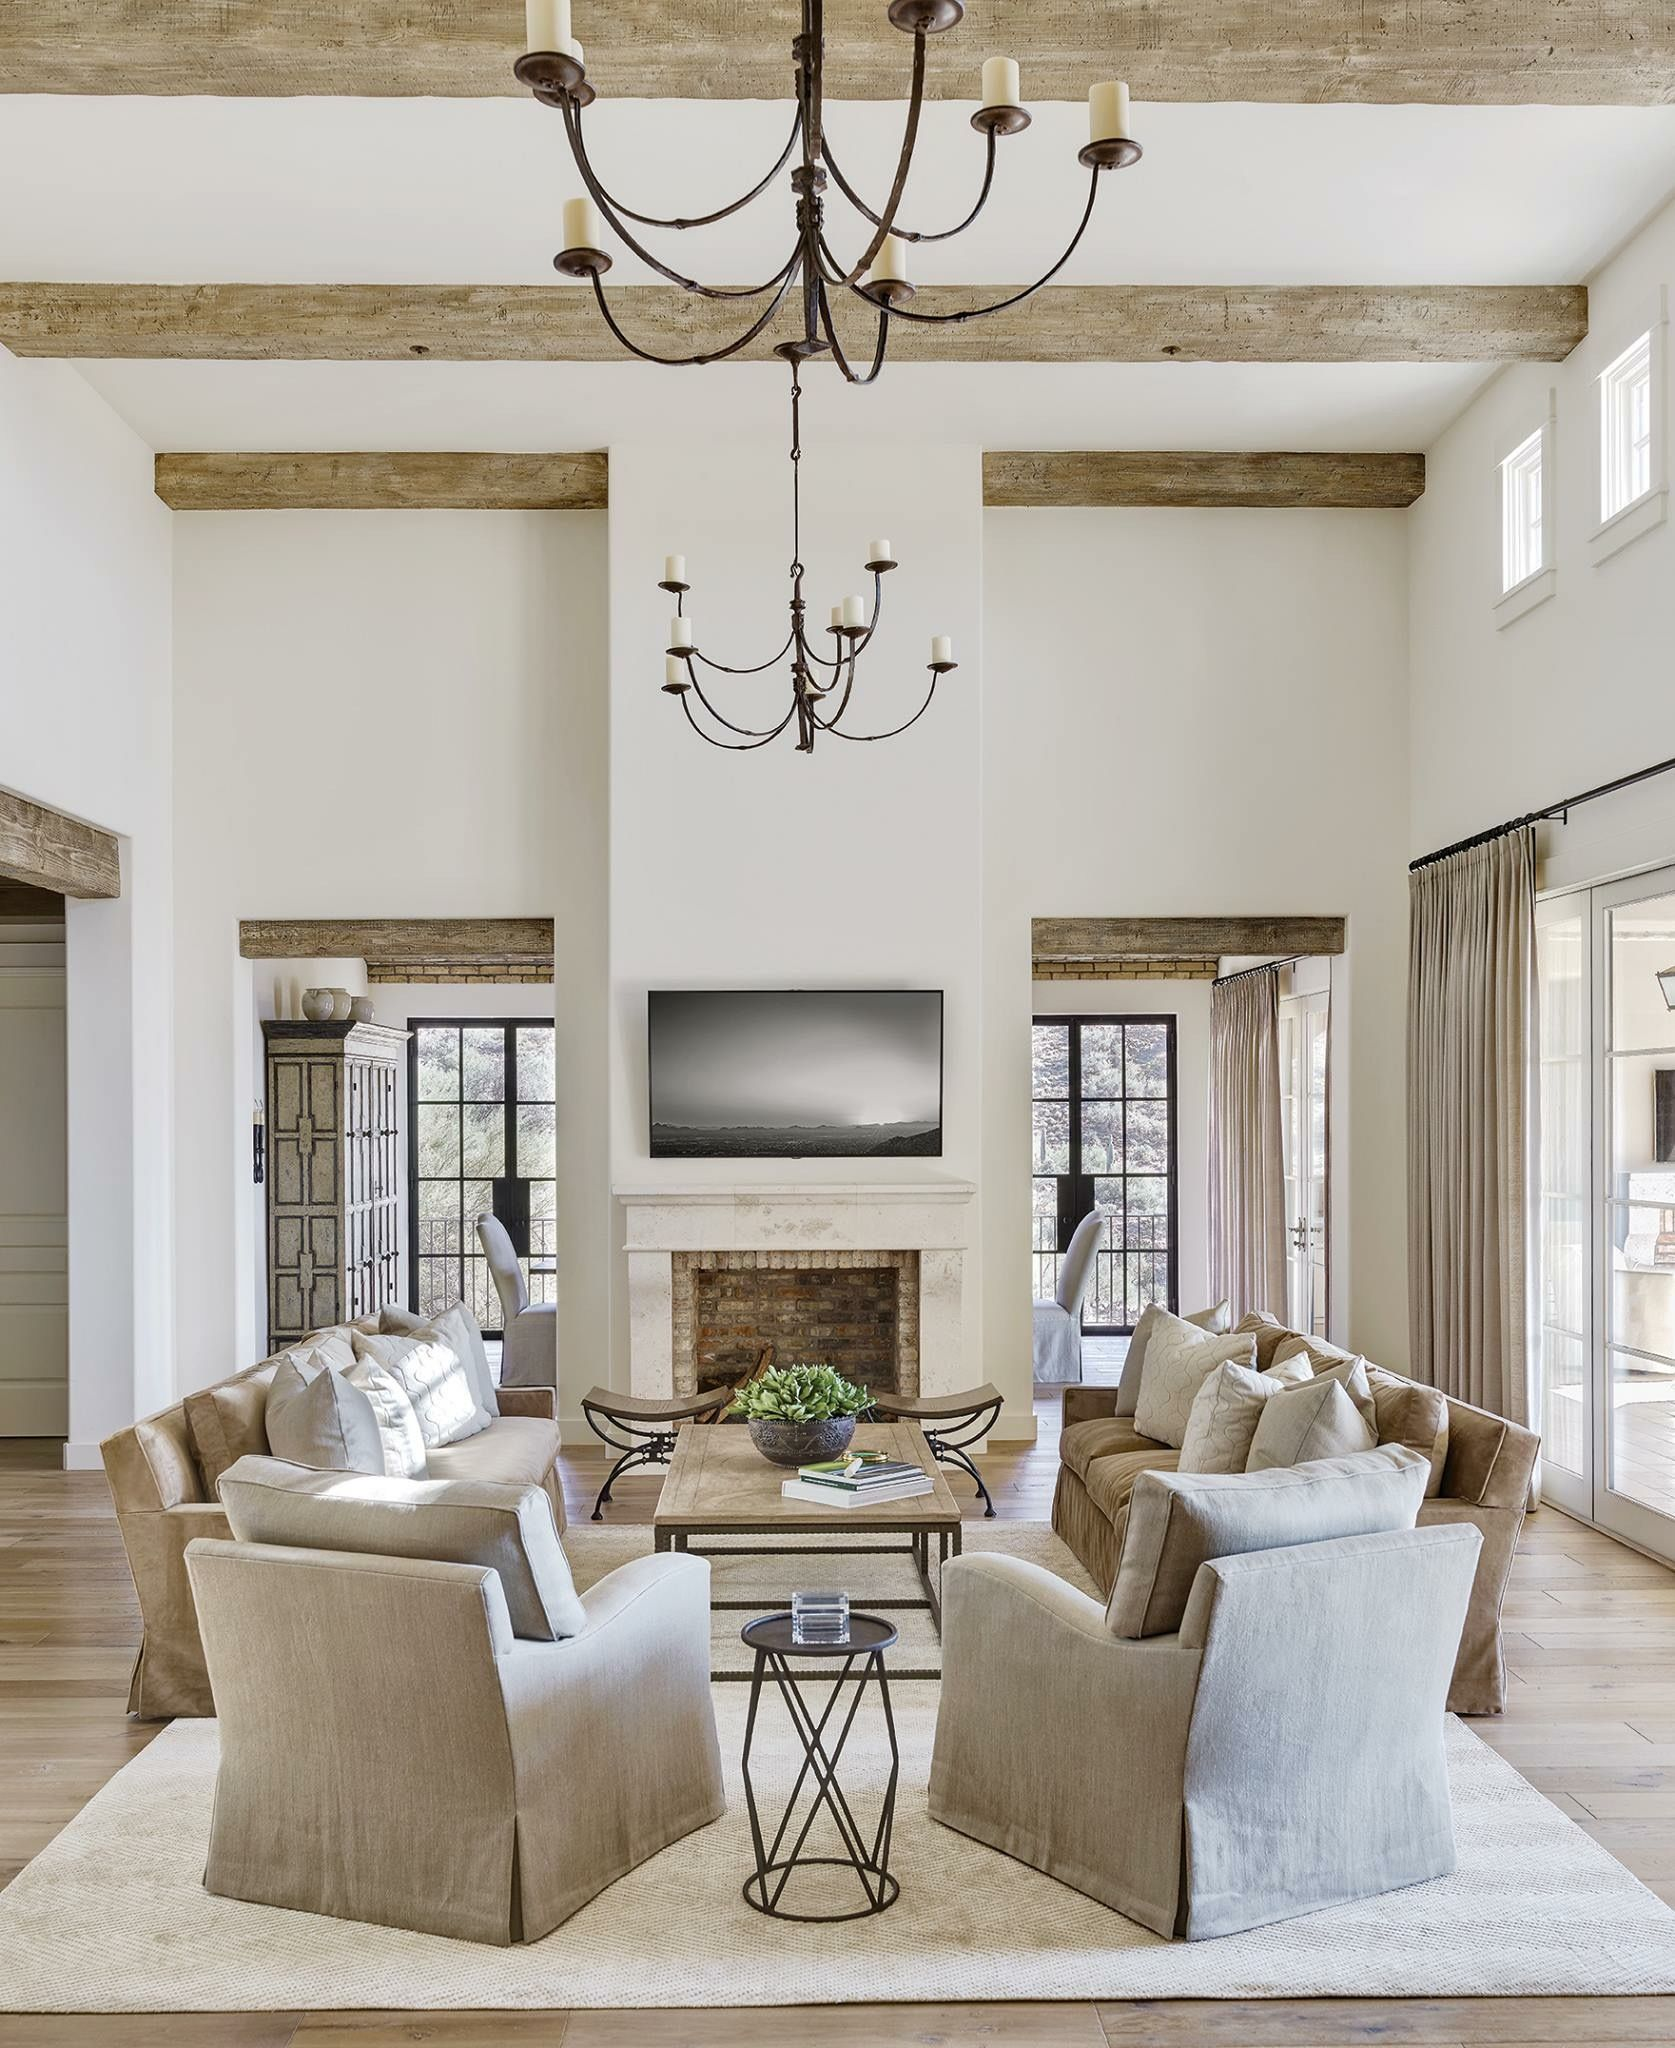 Pin by peek and co on greystone | Pinterest | Wall colors, Beams and ...